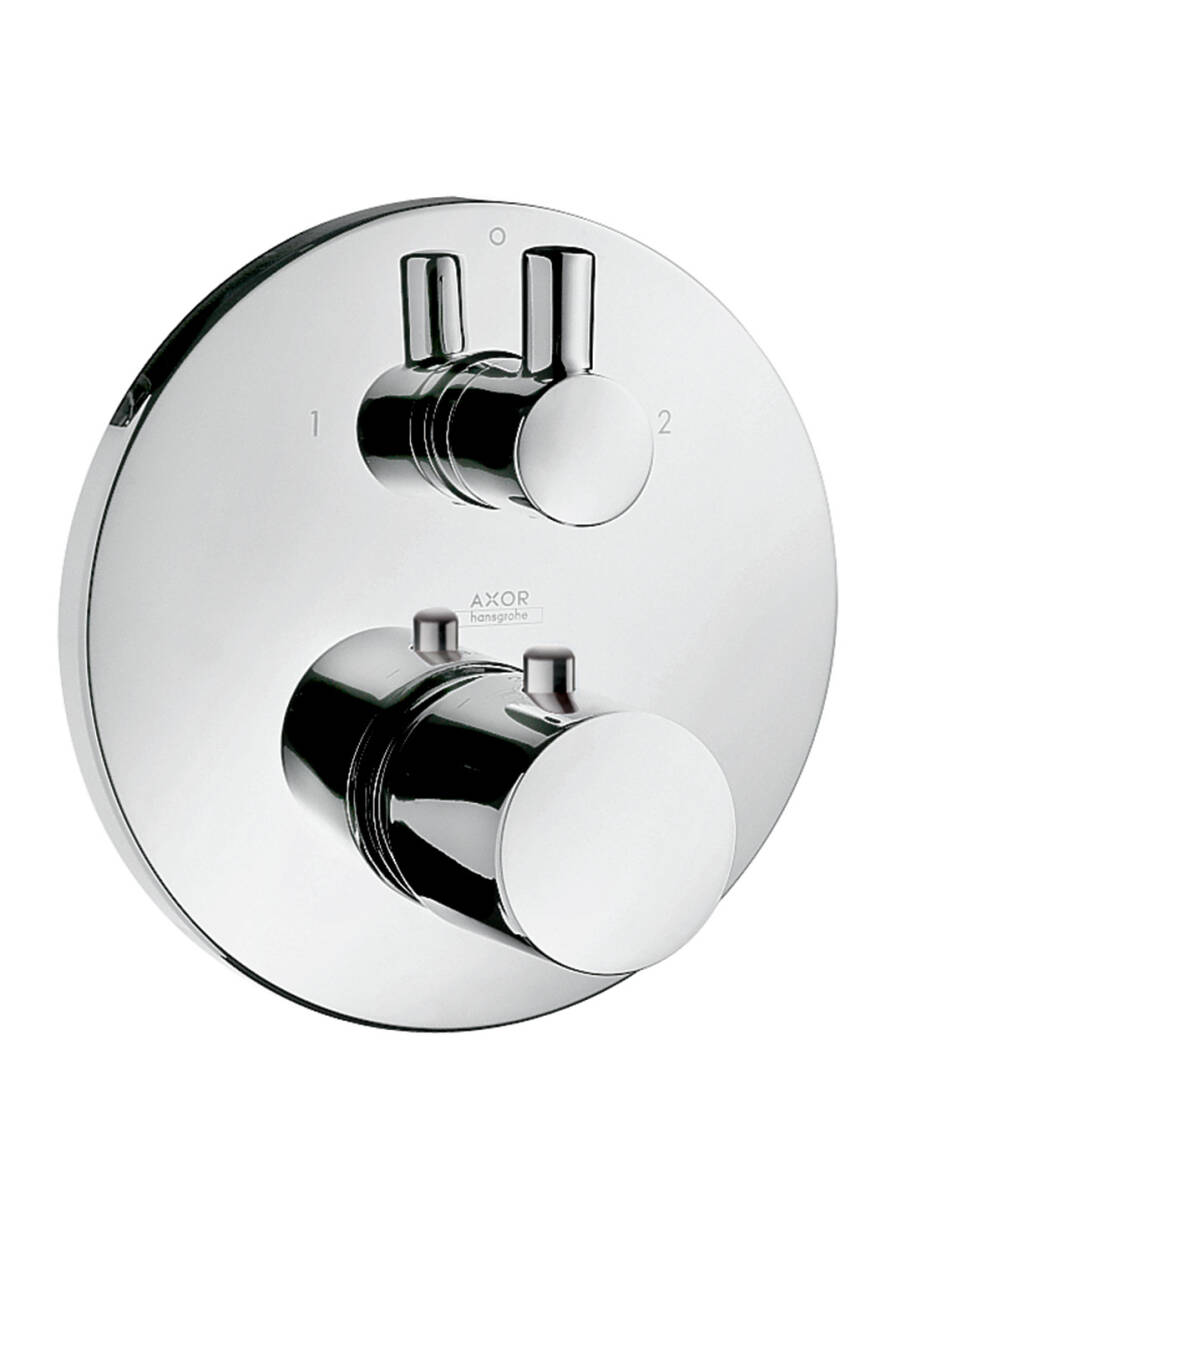 Thermostat for concealed installation with shut-off/ diverter valve, Brushed Chrome, 38720260